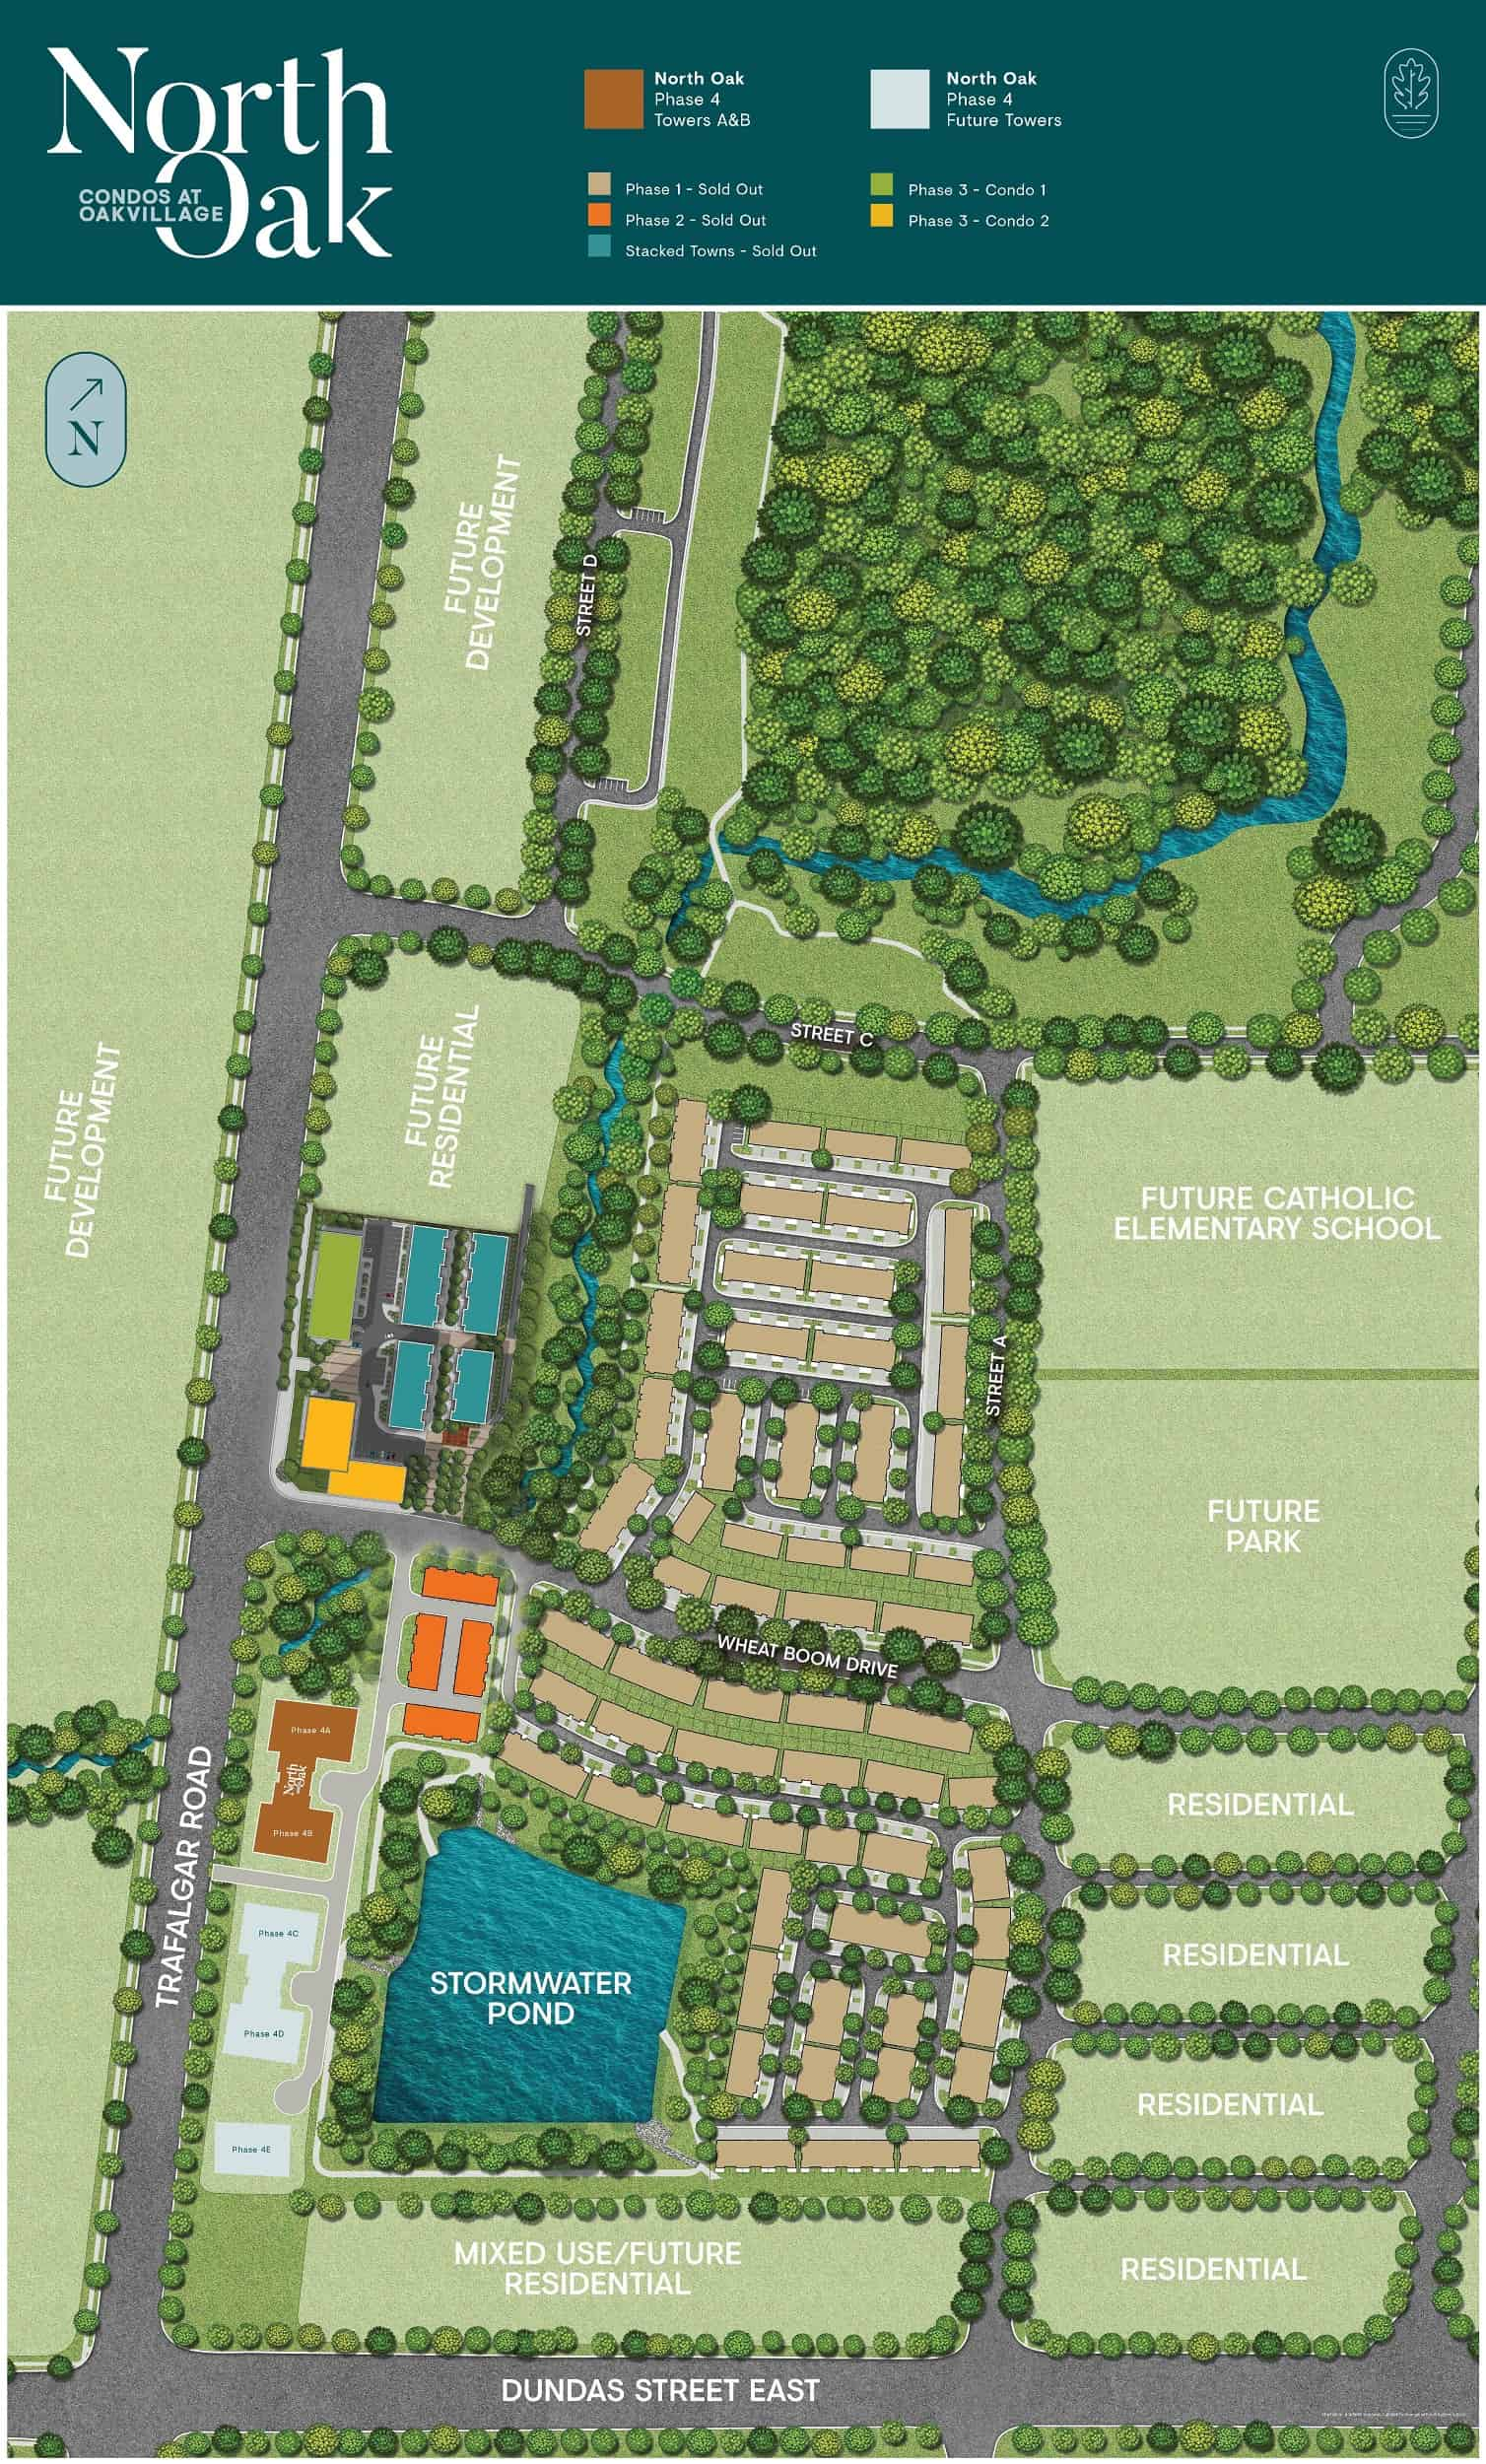 Site plan of North Oak in Oakvillage